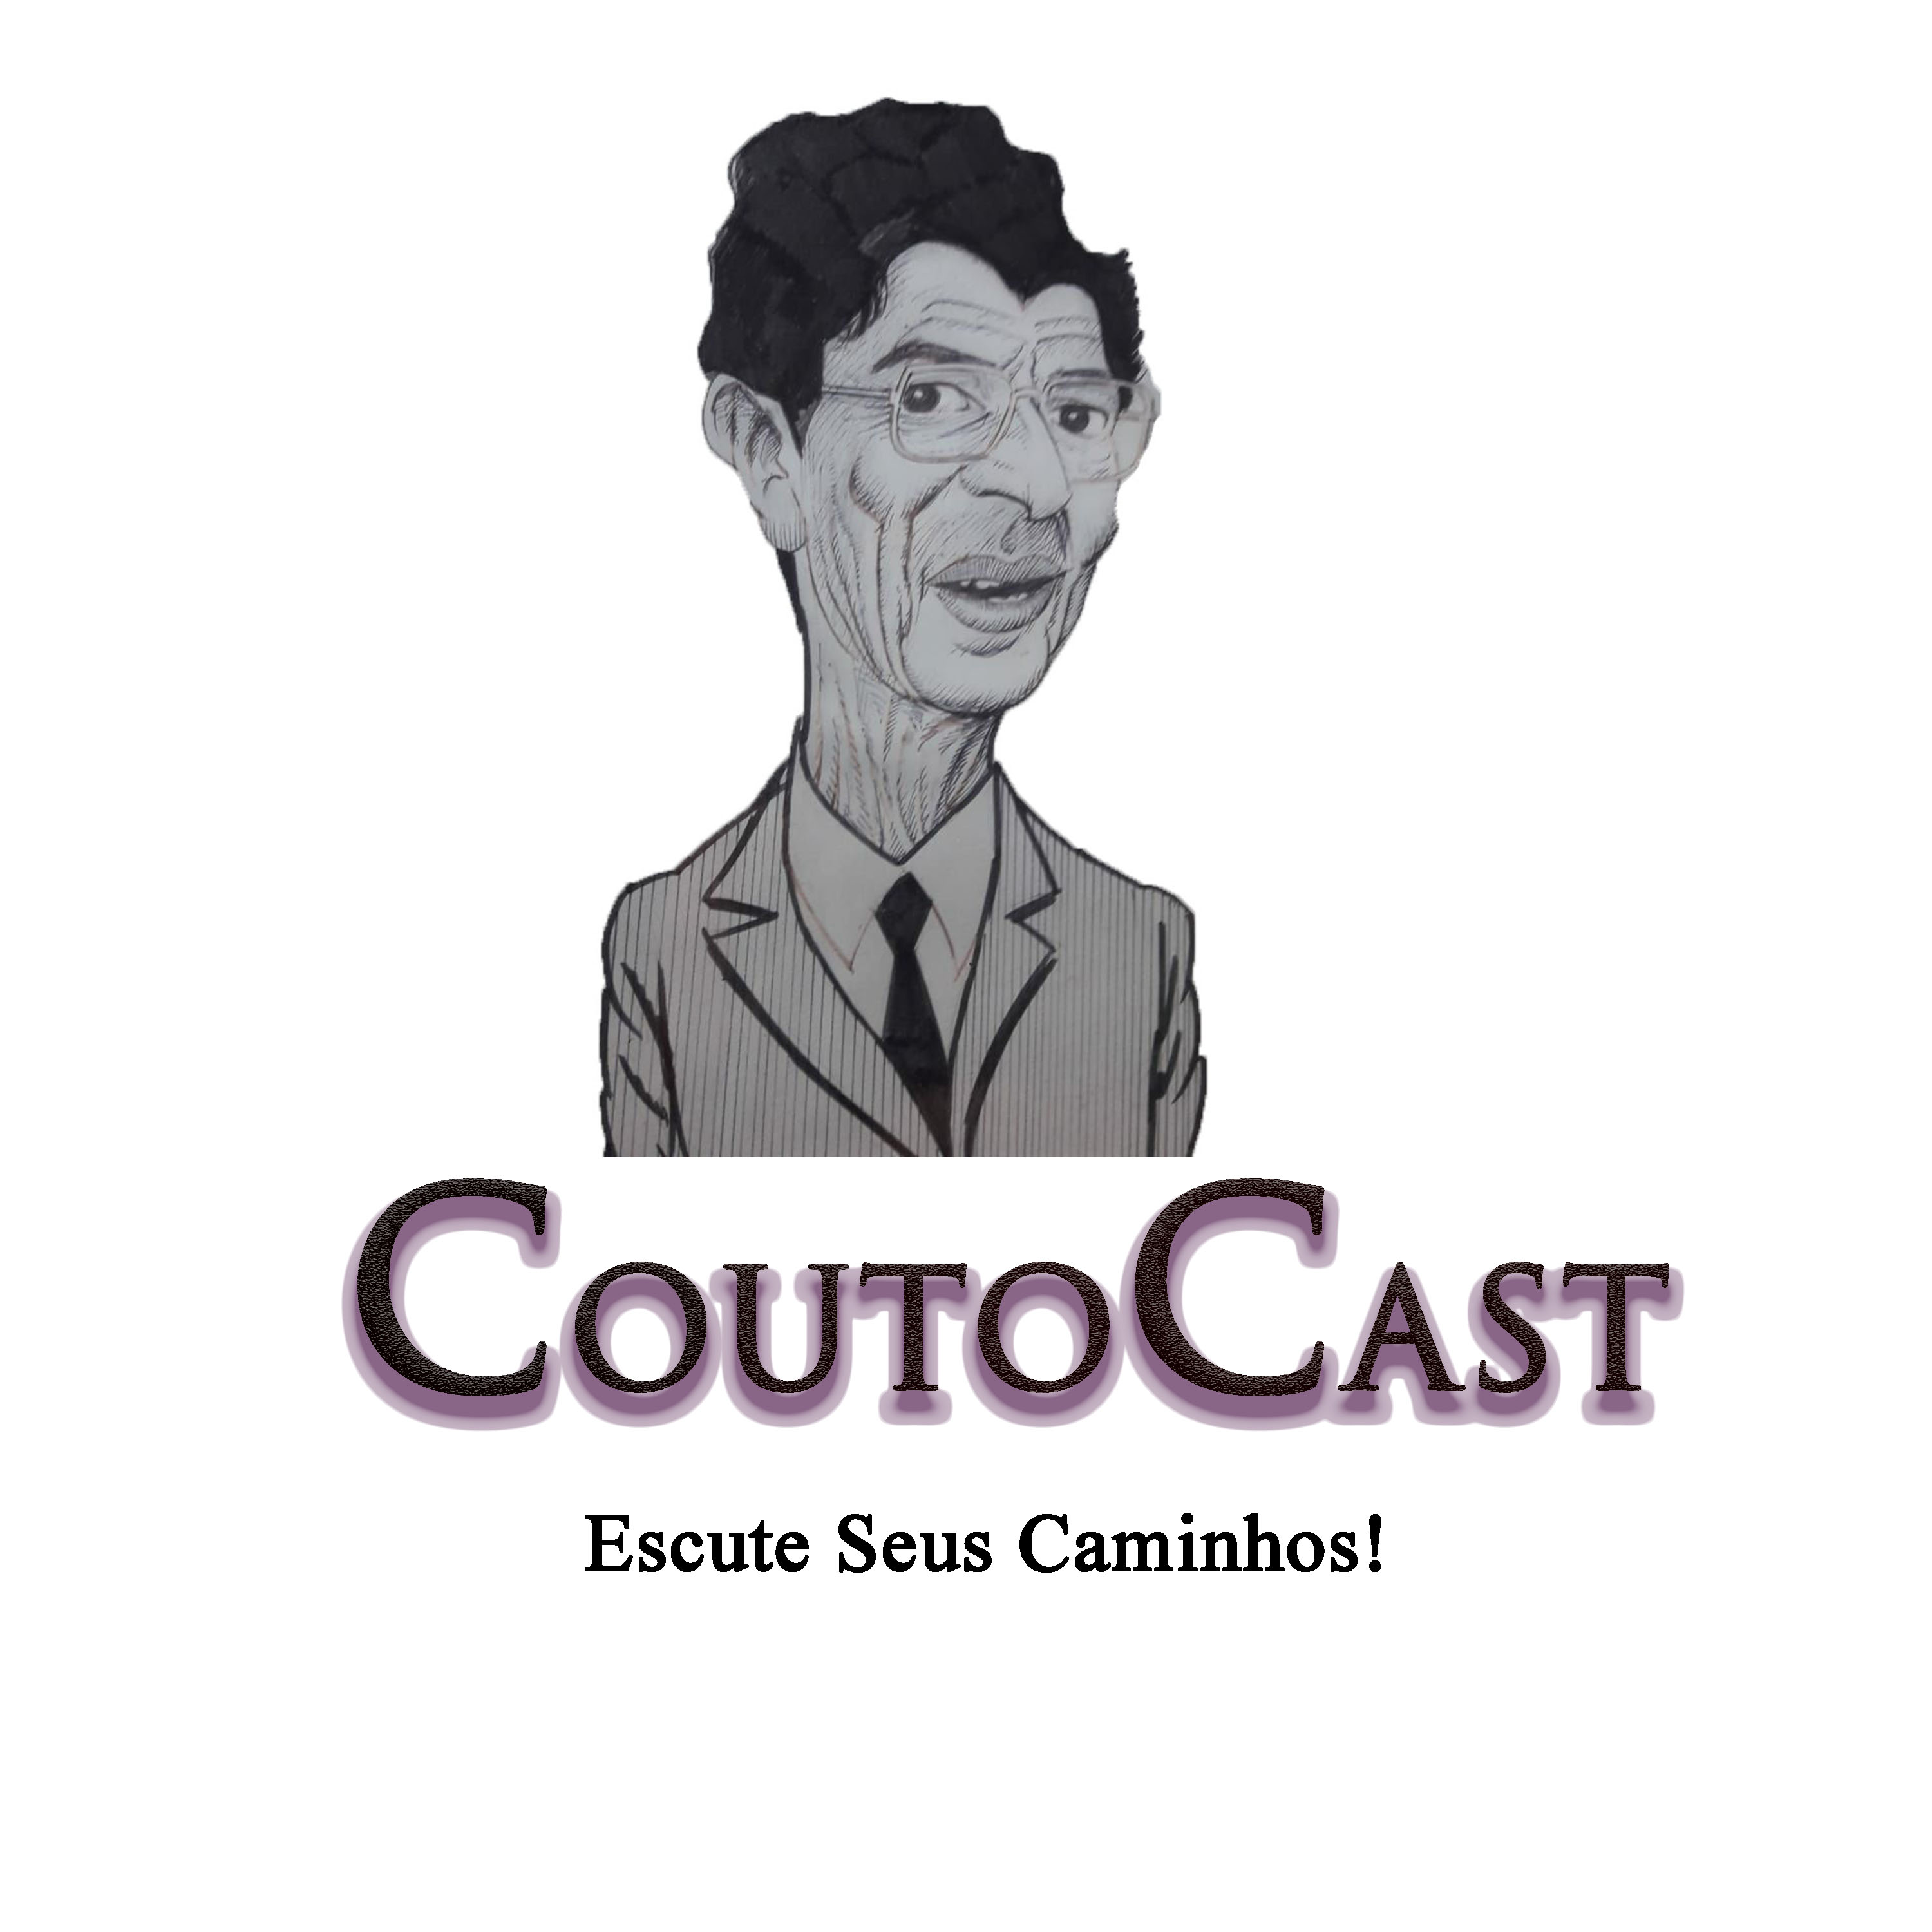 CoutoCast